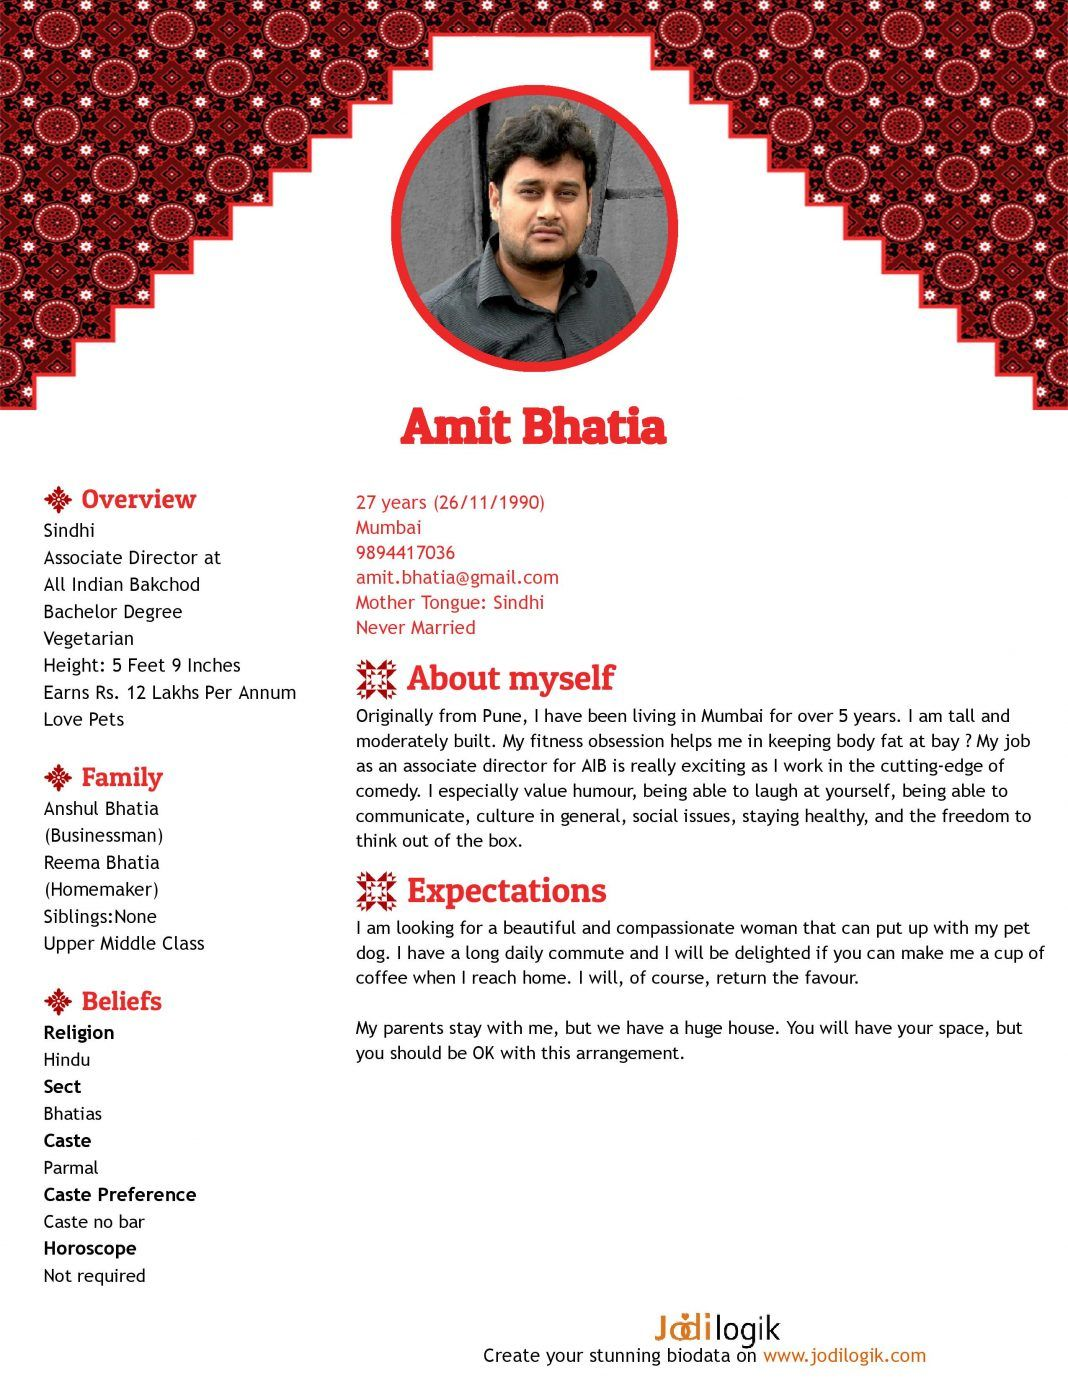 About Marriage me profile